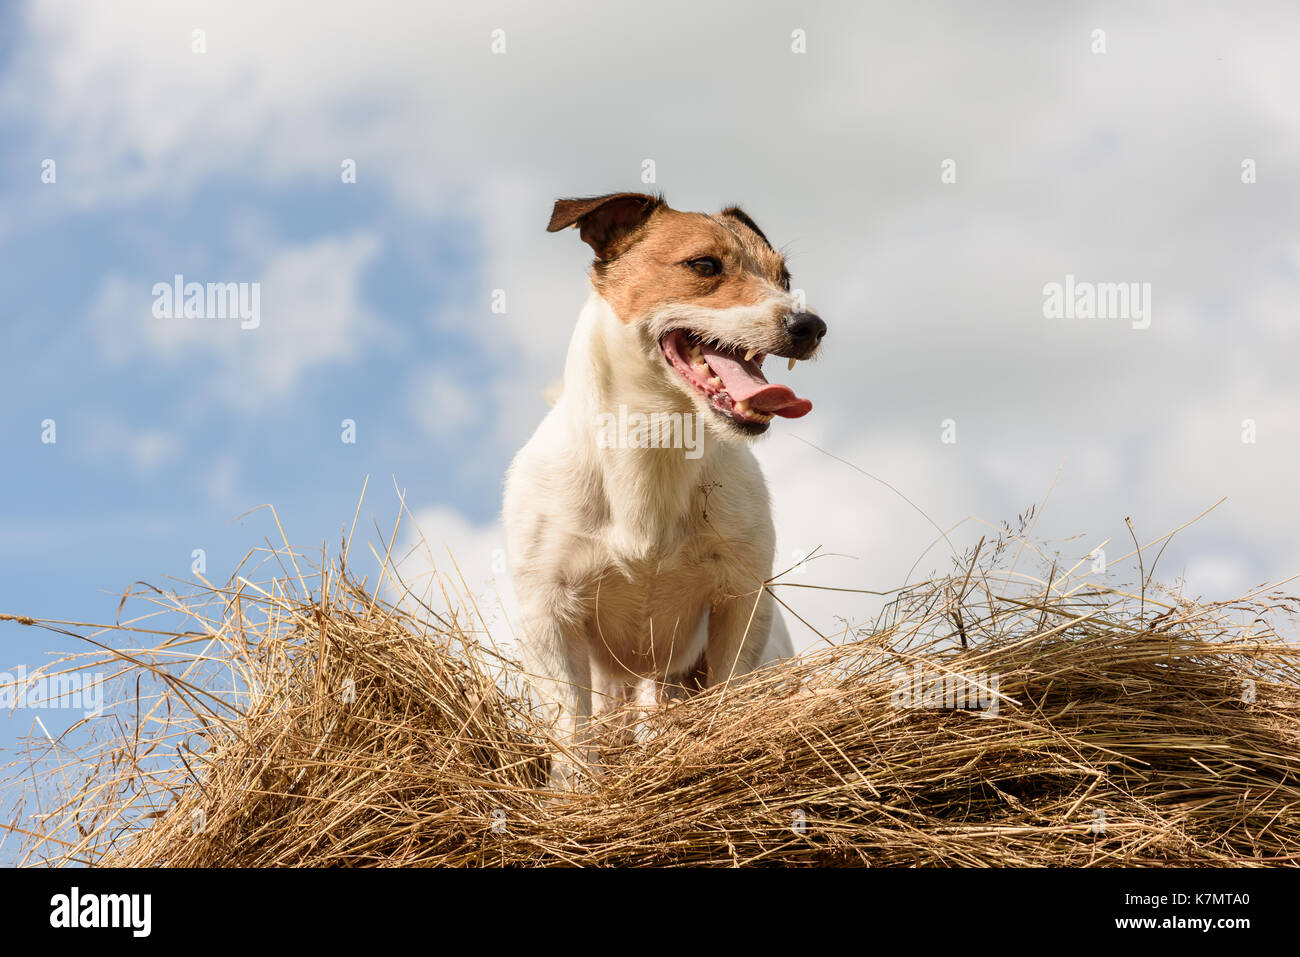 Summer rustic scene with dog on hay bale at hot day - Stock Image